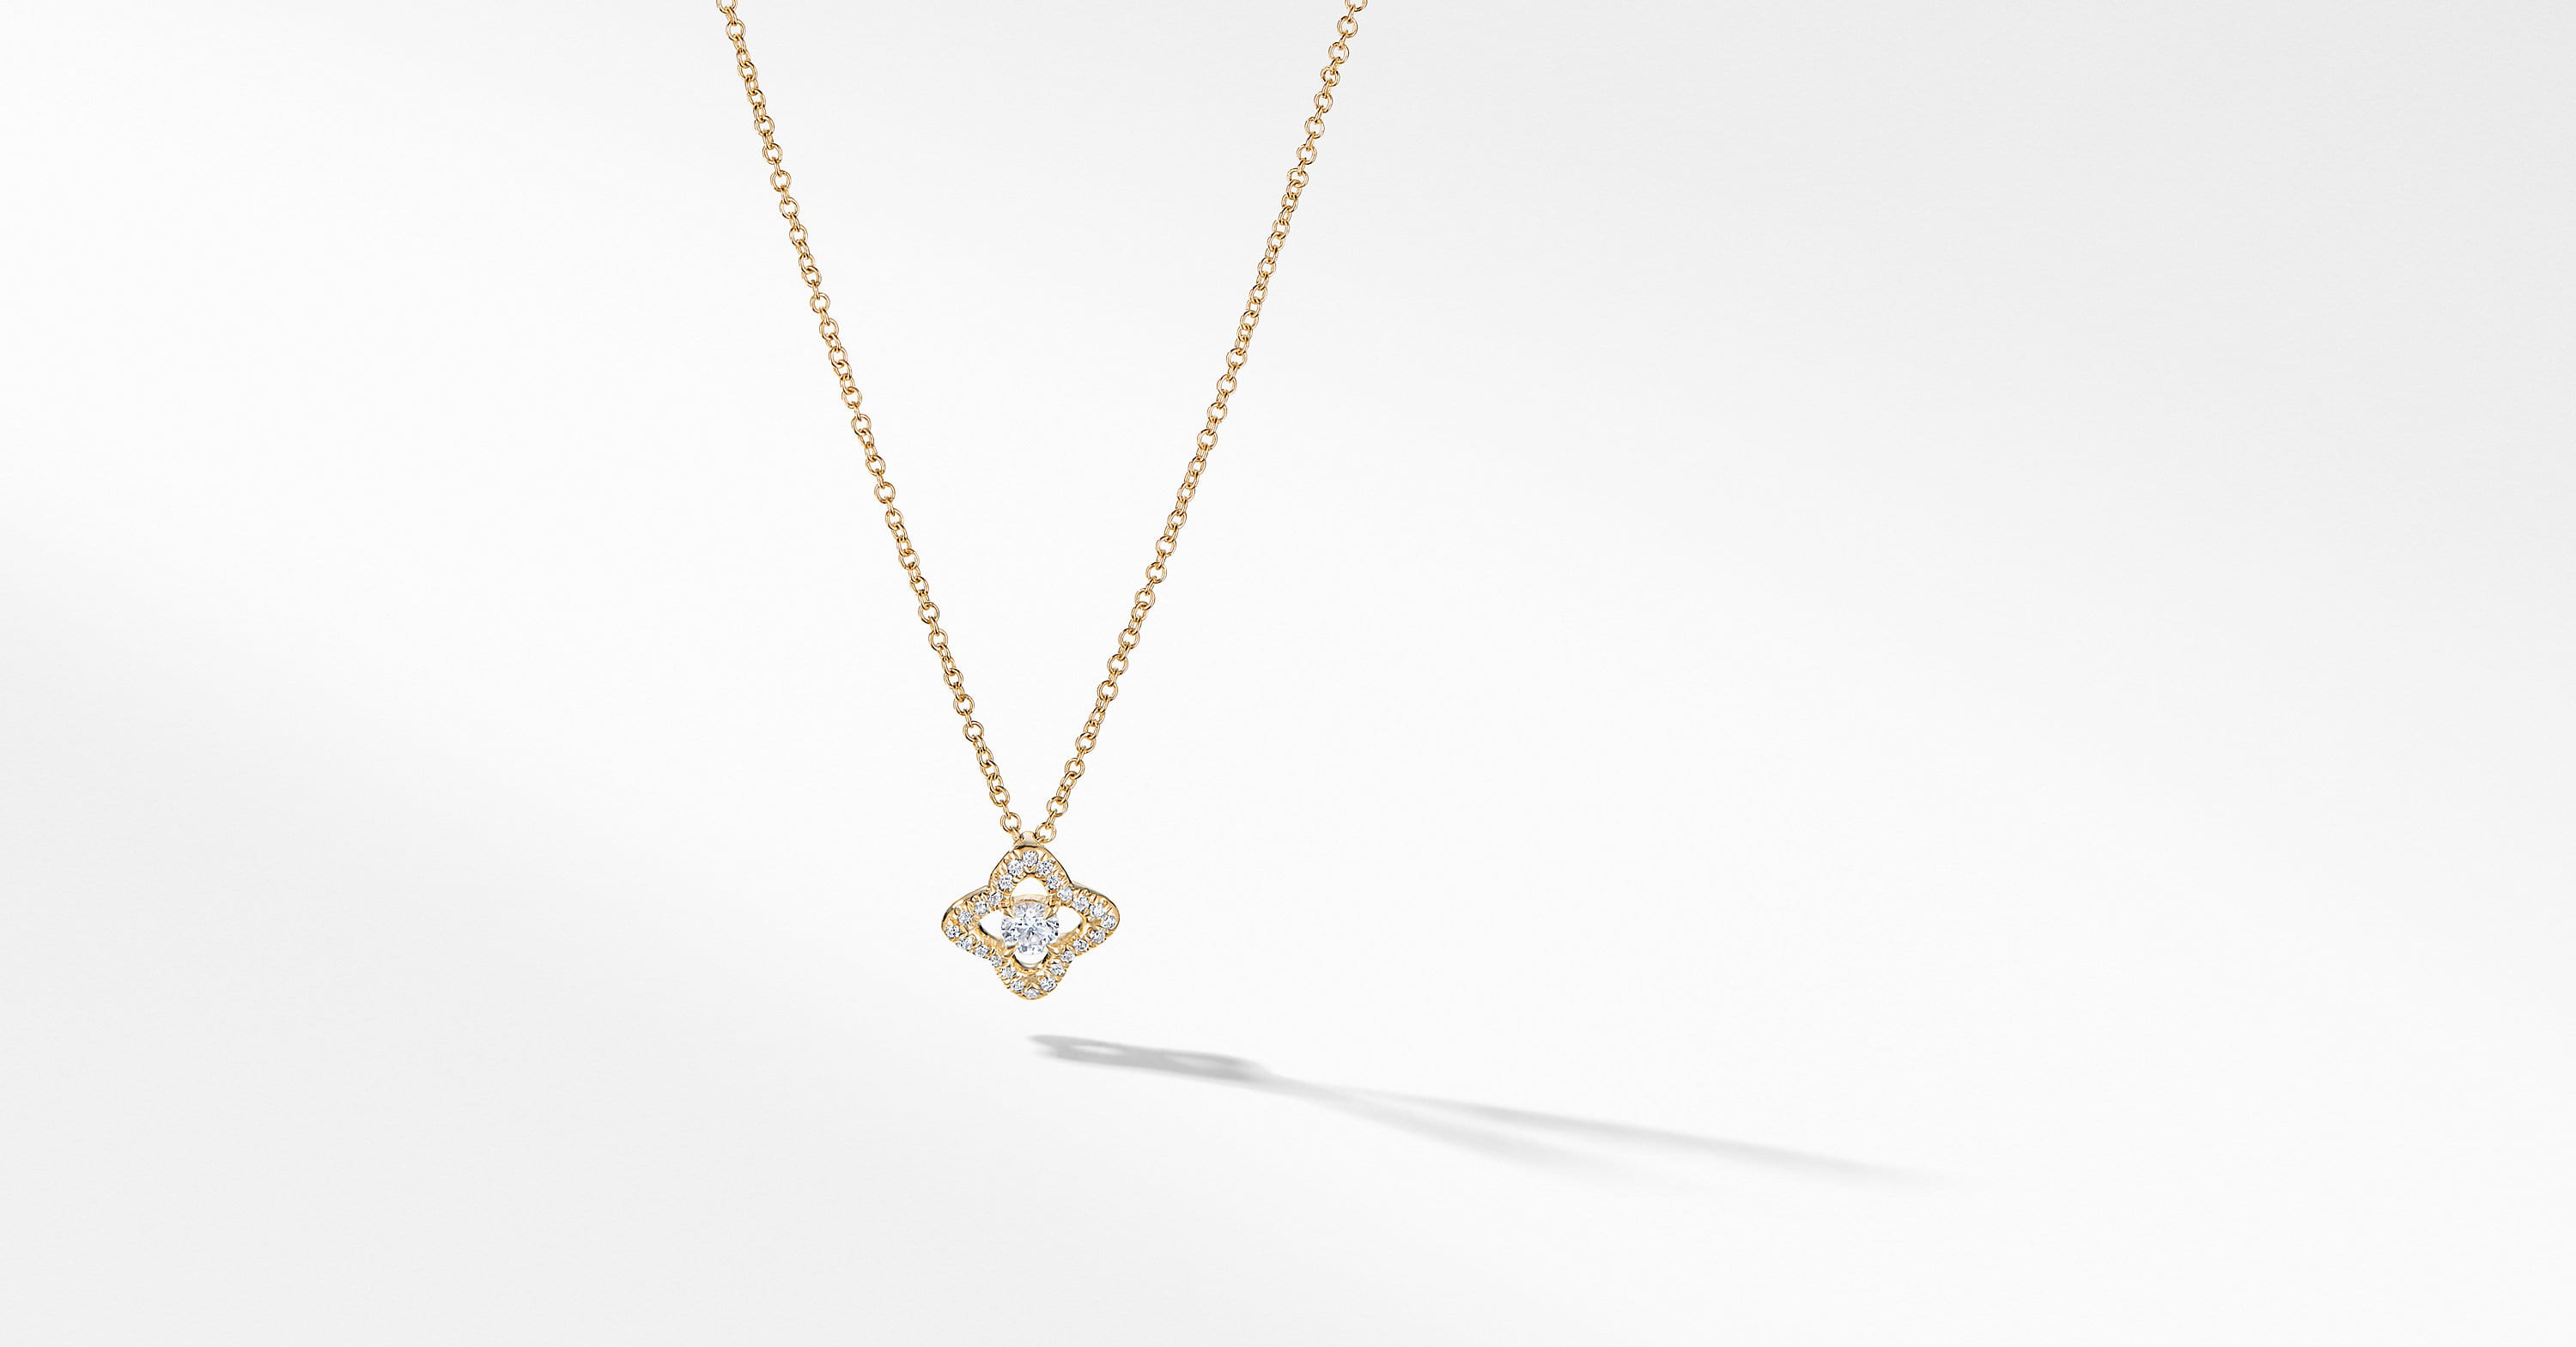 Venetian Quatrefoil Necklace with Diamonds in 18K Gold